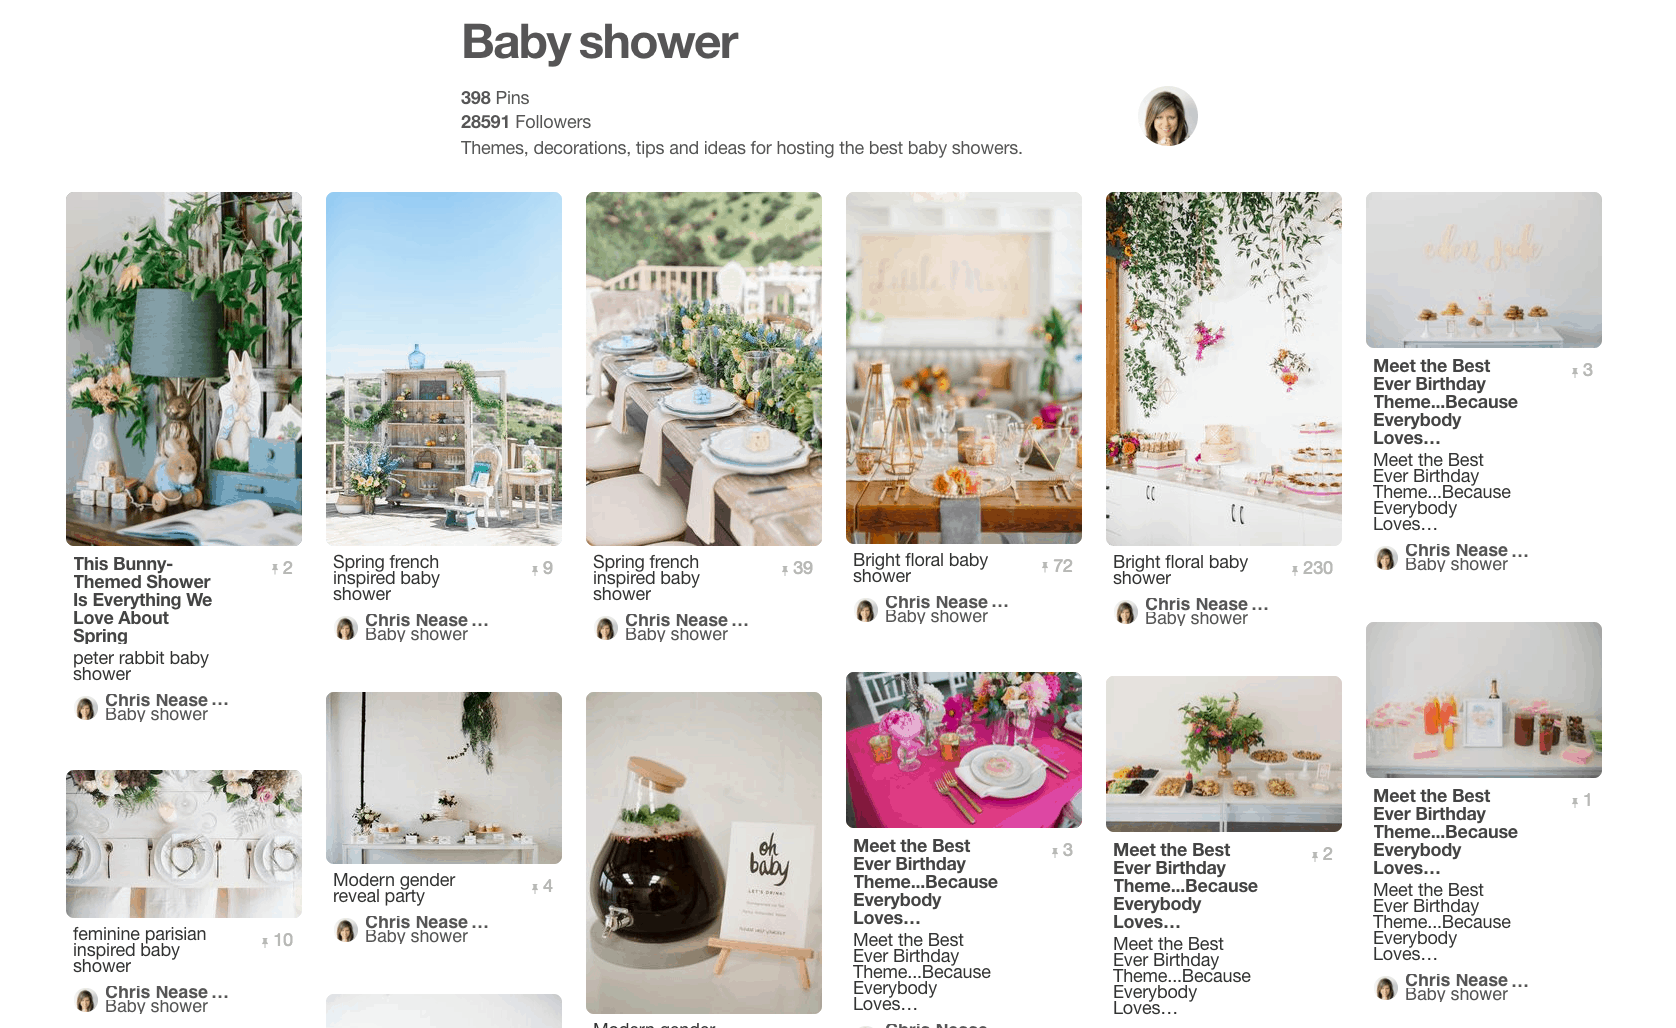 If you are planning a baby shower, you HAVE to check out these Pinterest boards! They have everything you need for a fun and unique baby shower: themes, decor, games, gifts, ideas for baby boy baby shower, baby girl baby shower or gender neutral baby shower!